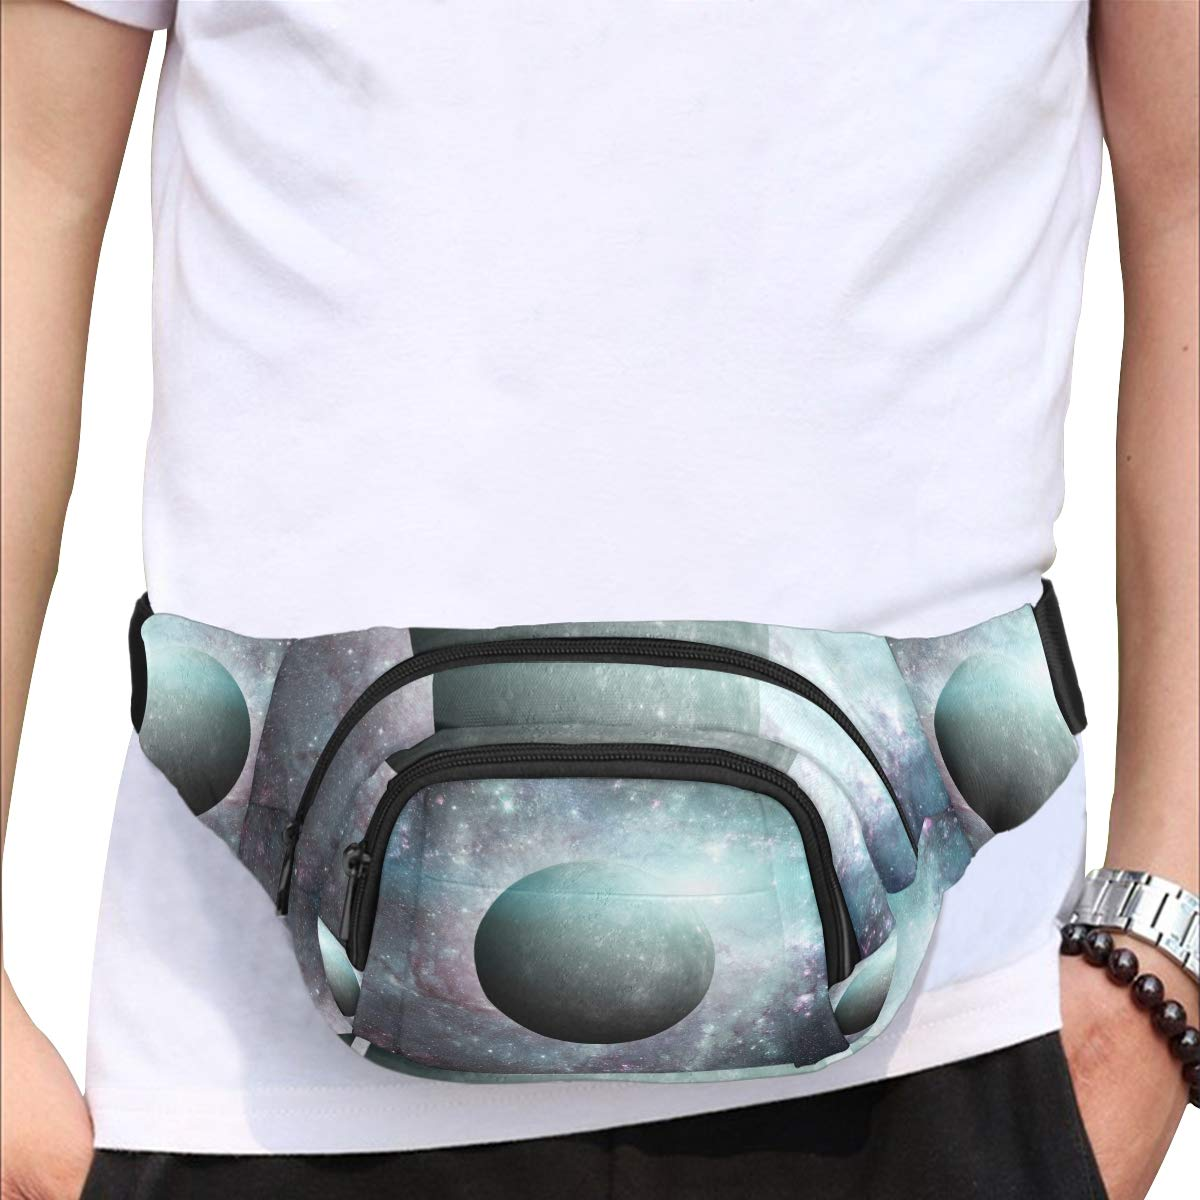 Beautiful Planets Of The Solar System Fenny Packs Waist Bags Adjustable Belt Waterproof Nylon Travel Running Sport Vacation Party For Men Women Boys Girls Kids